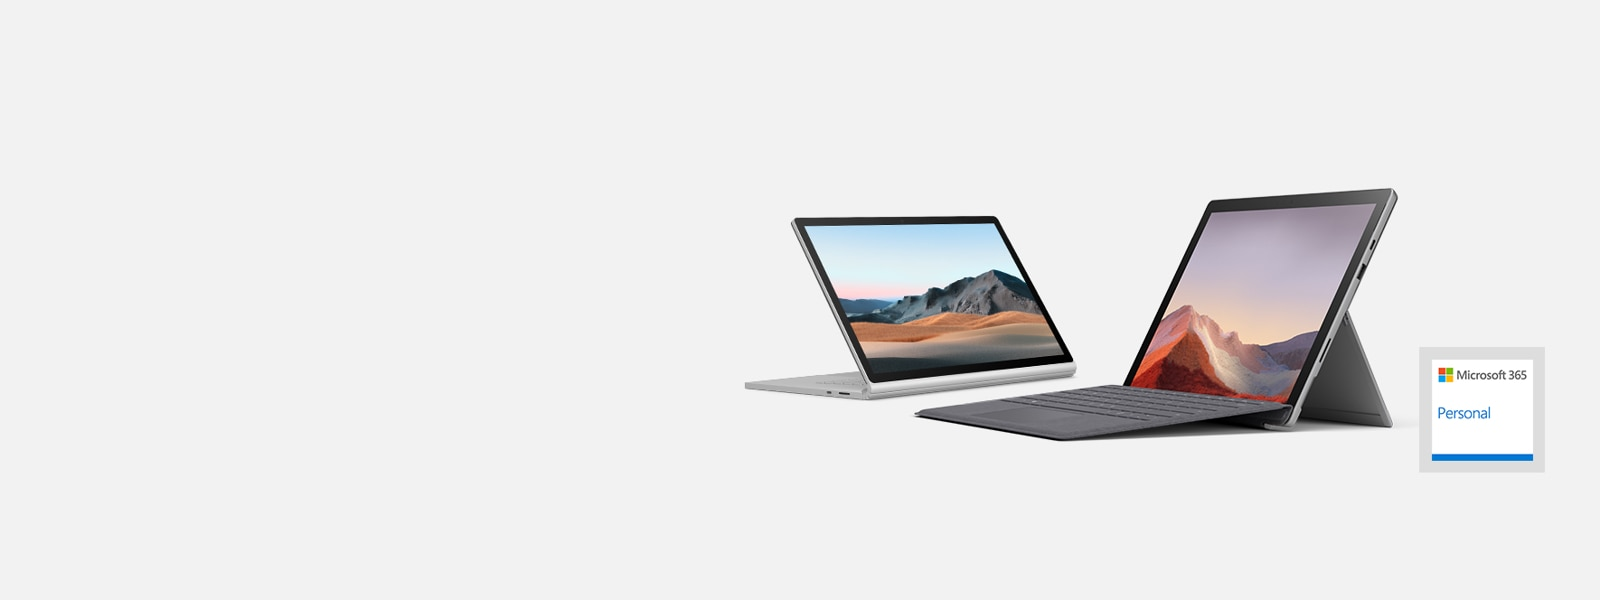 Surface Pro 7 y Surface Book 3